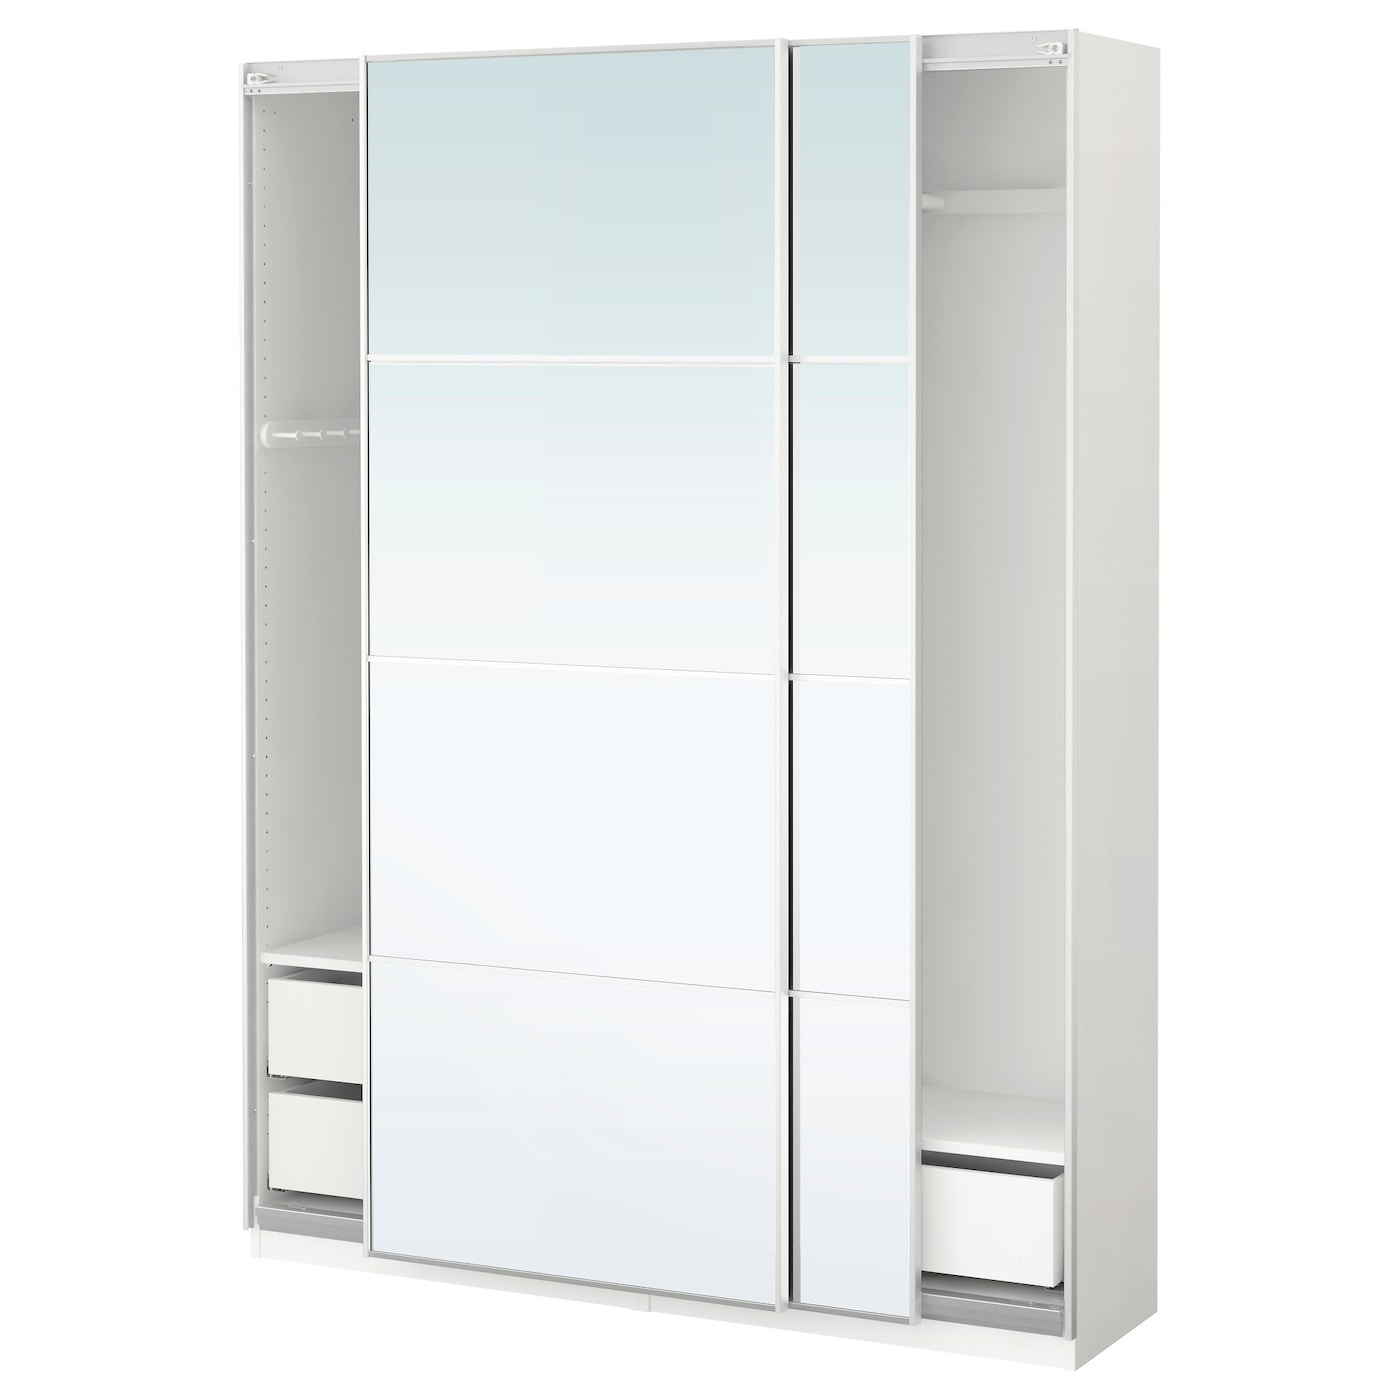 white glass ilumut uggdal wardrobe ikea cm pax of com grey armoir